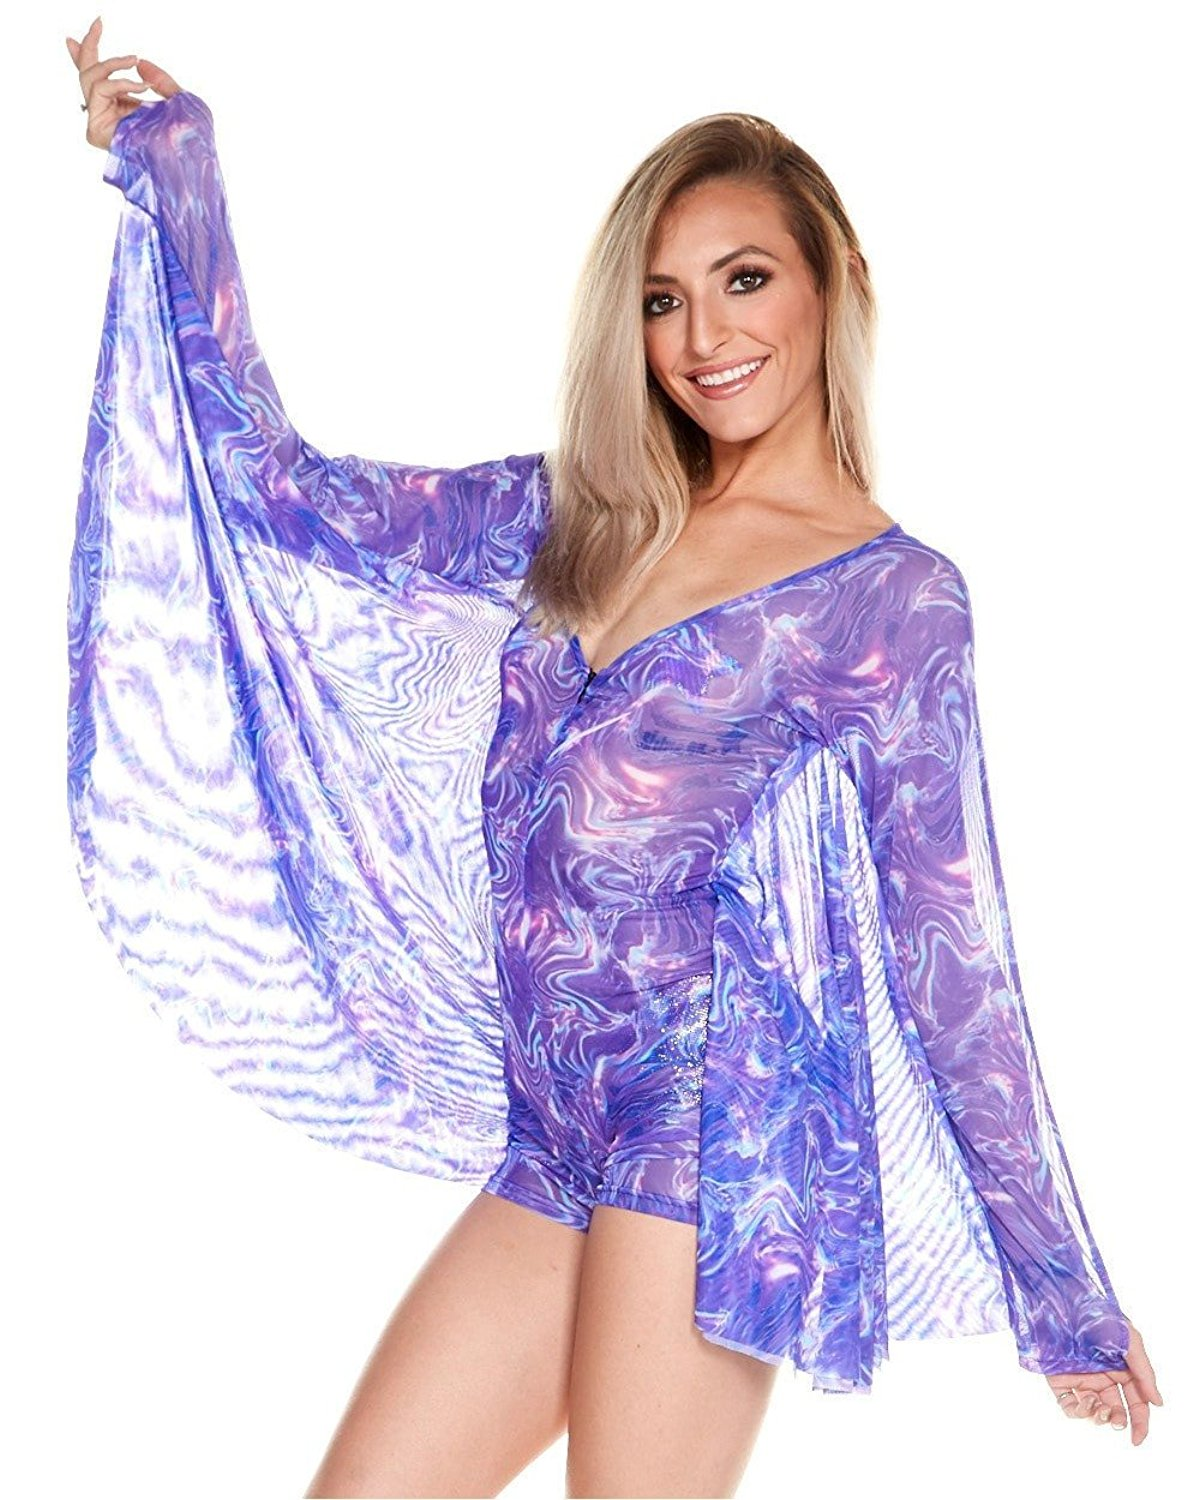 Sheer Mesh Bodysuit, Long Sleeve Zip Up Rave Romper with Wings